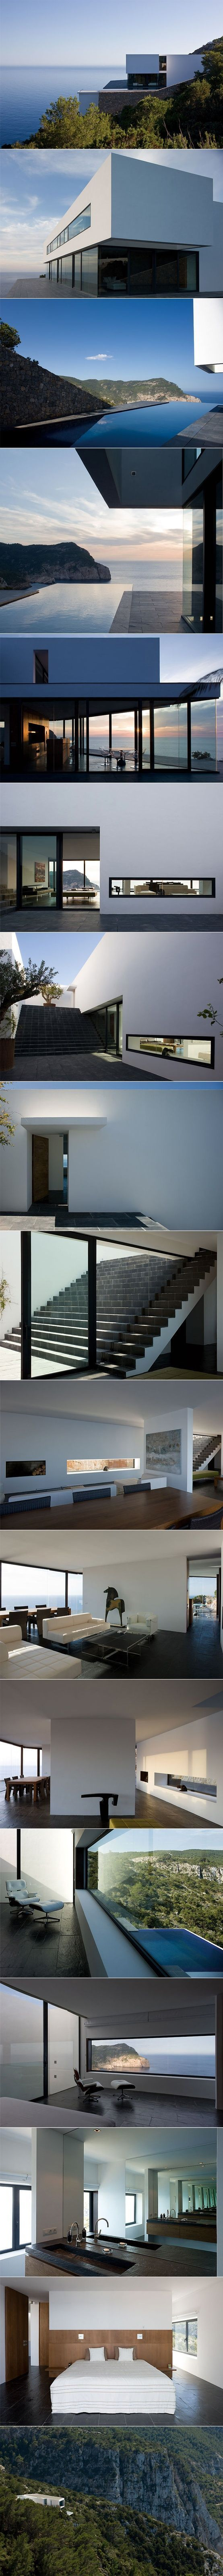 274 best Spaces images on Pinterest | Contemporary architecture ...